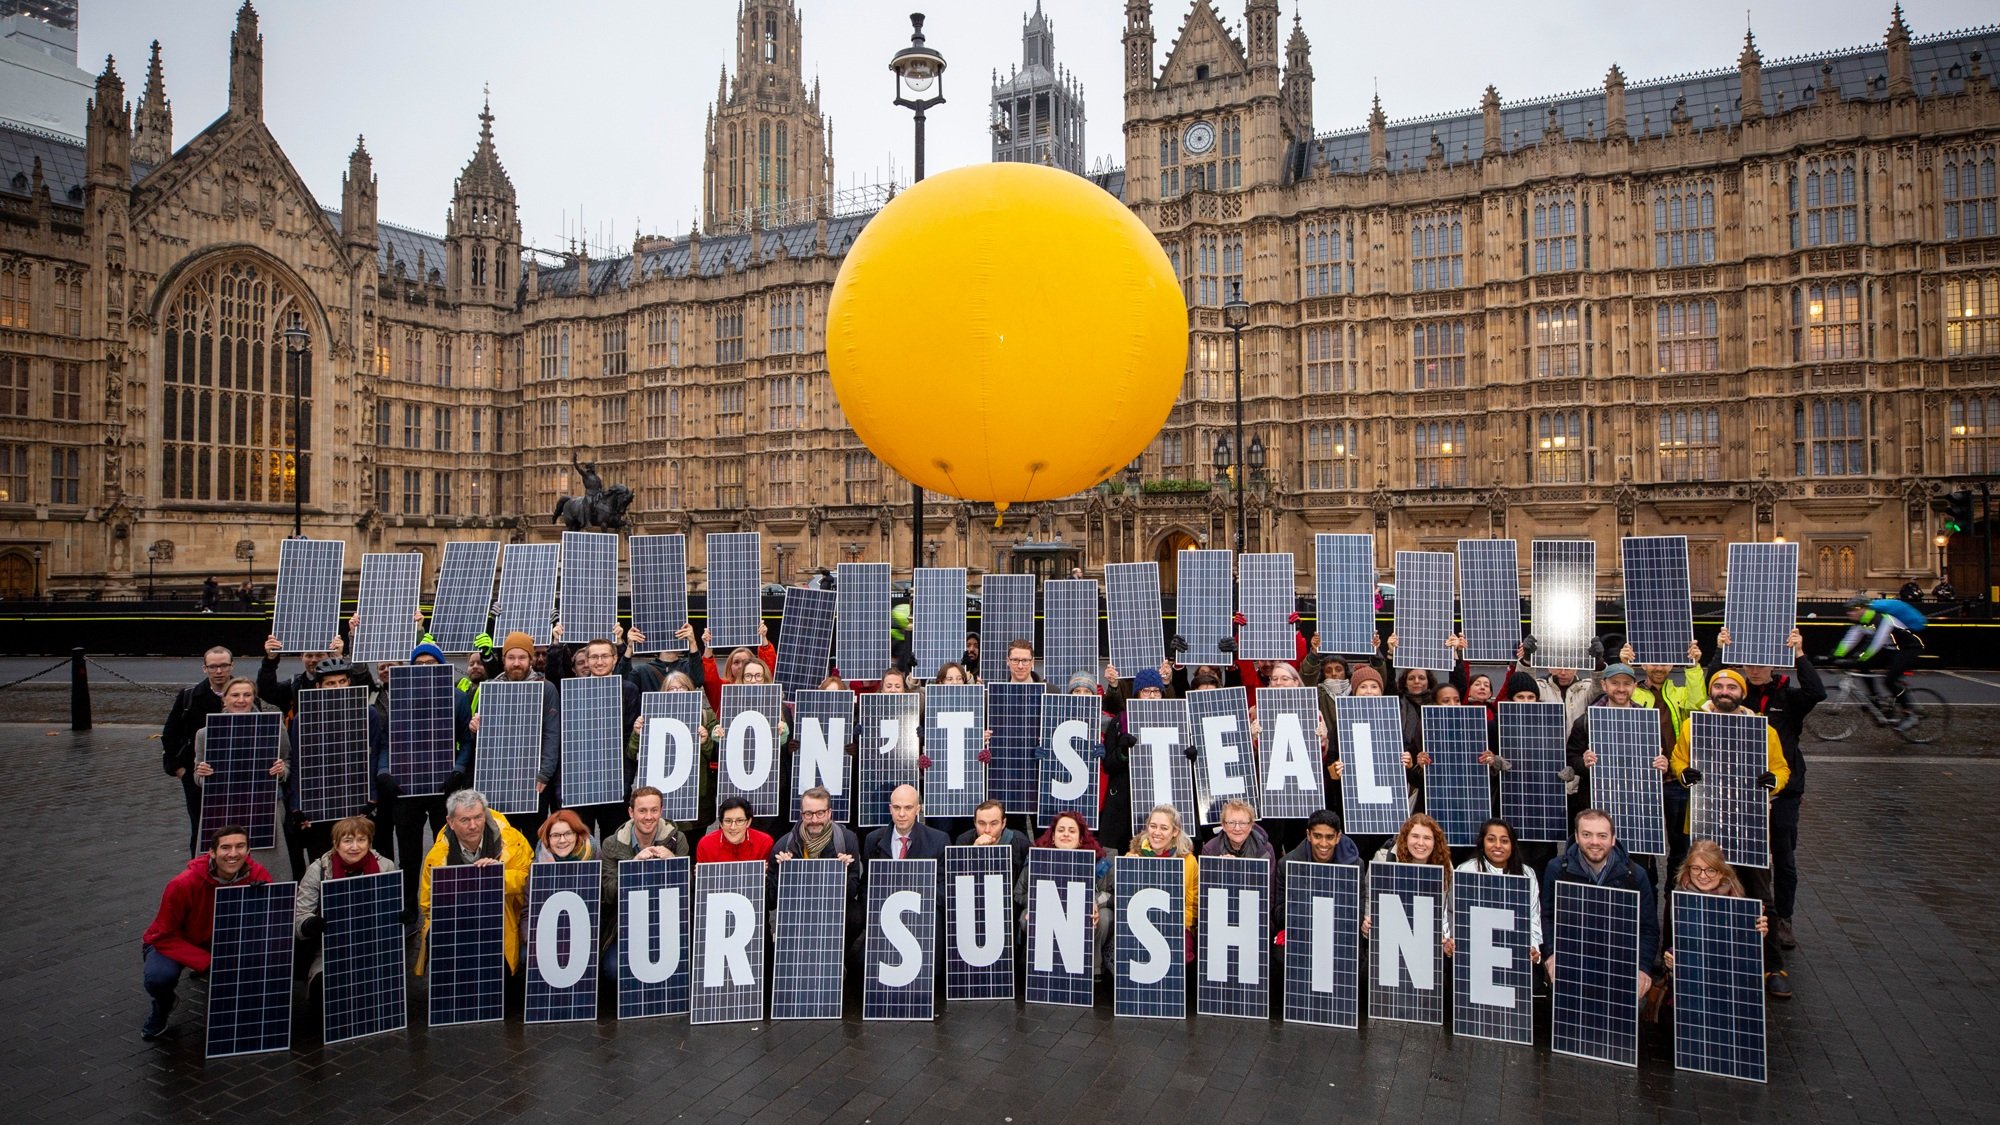 people outside houses of parliament hold up solar panels with 'don't steal our sunshine' written on them. A large orange ball floats above them.